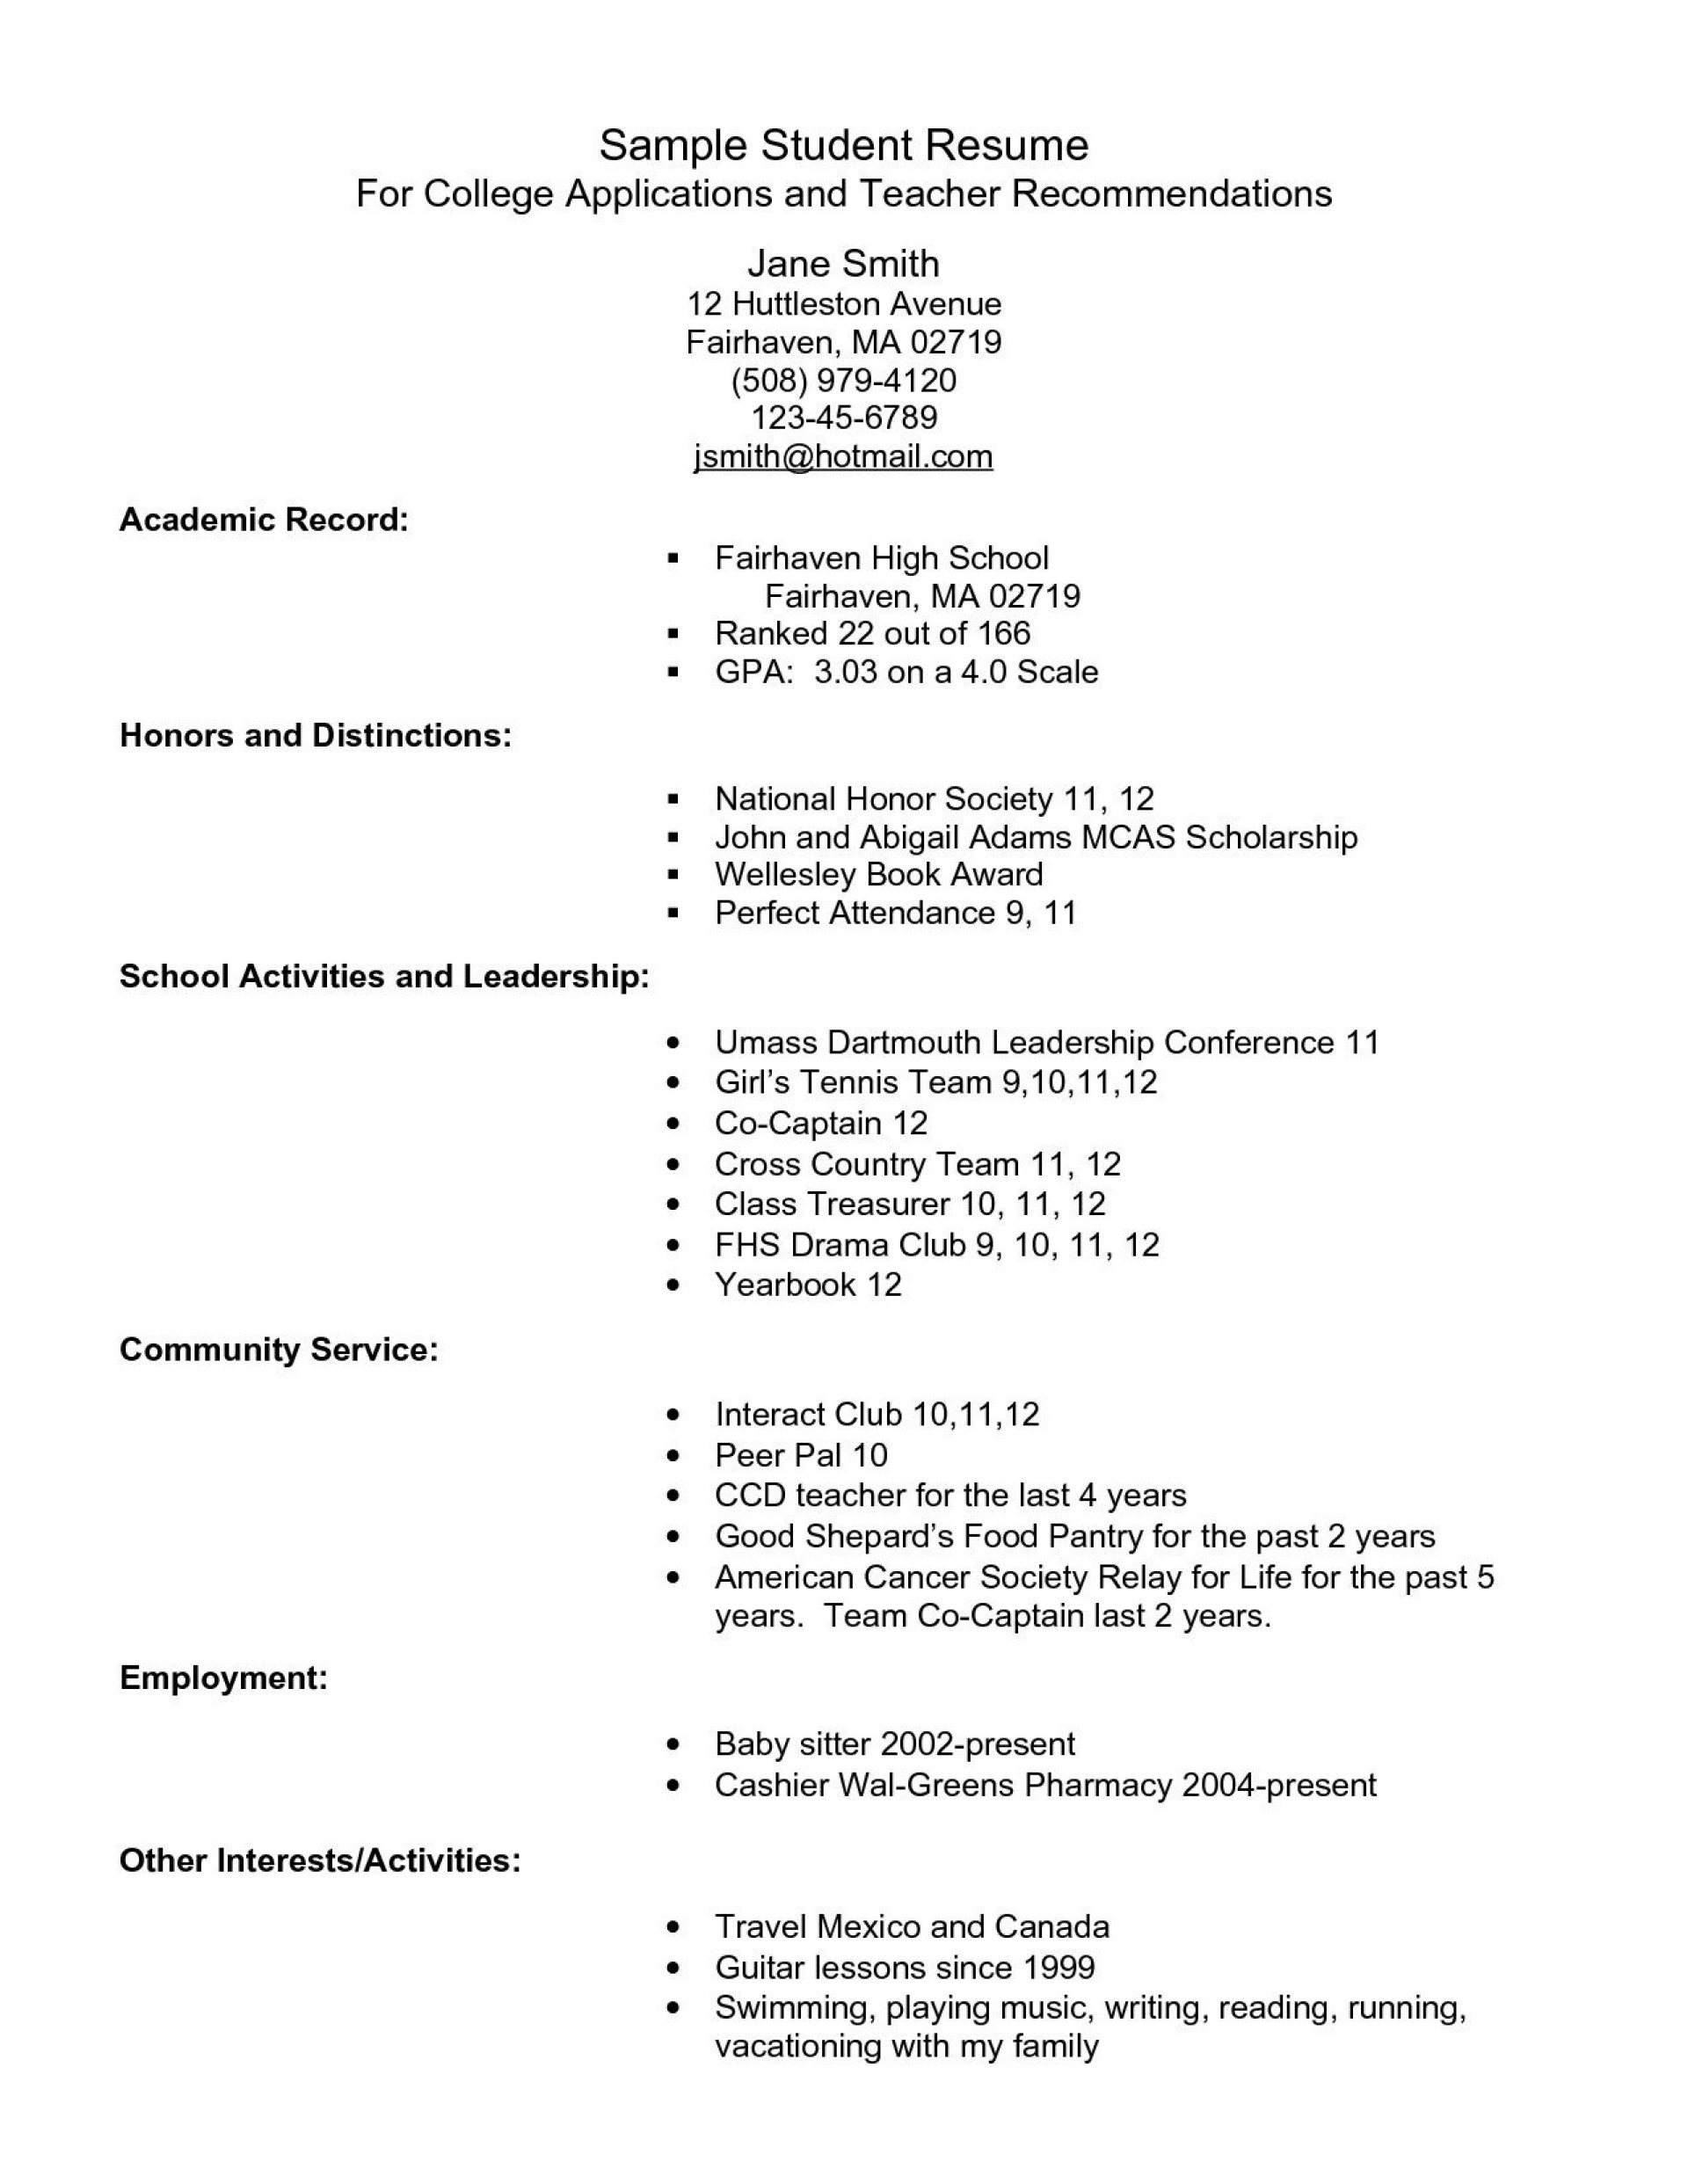 002 Awful Resume For College Application Template Photo  Templates1920